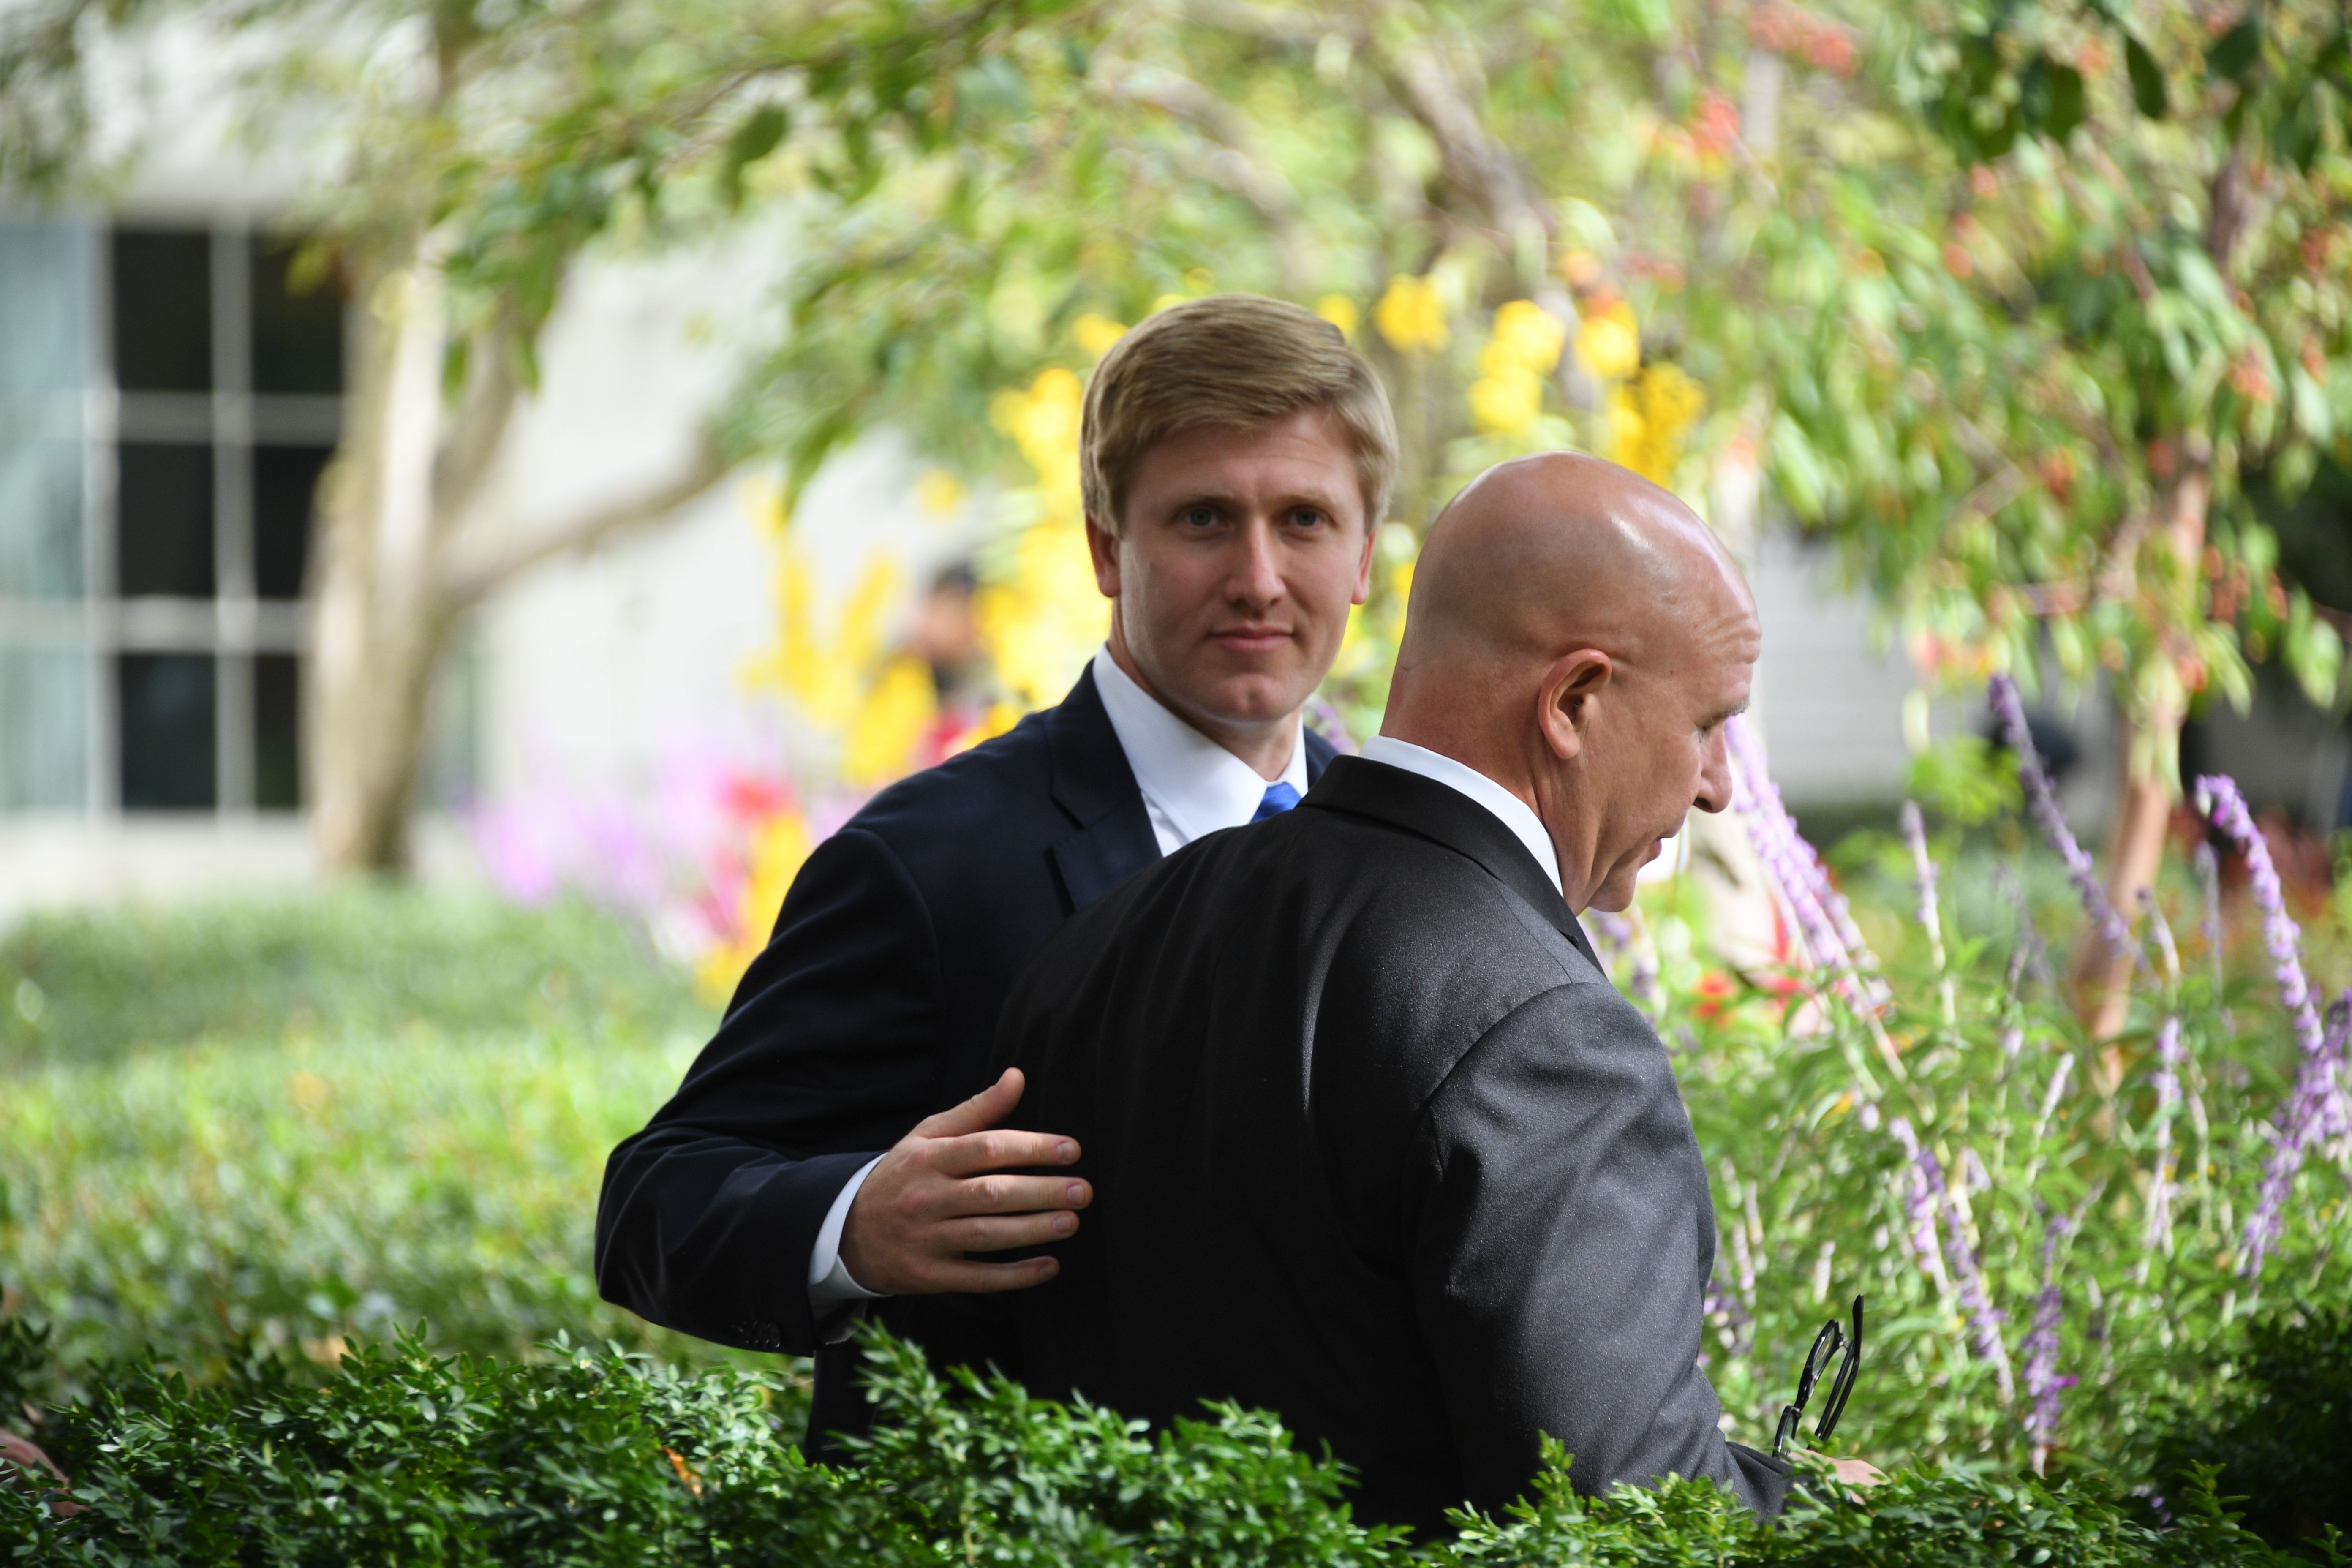 US Vice President Mike Pence's chief of staff Nick Ayers(L) walks with National Security Adviser H.R. McMaster after a joint press conference between US President Donald Trump and Singaporean Prime Minister Lee Hsien Loong in the Rose Garden of the White House in Washington, DC, October 23, 2017. / AFP PHOTO / JIM WATSON        (Photo credit should read JIM WATSON/AFP/Getty Images)